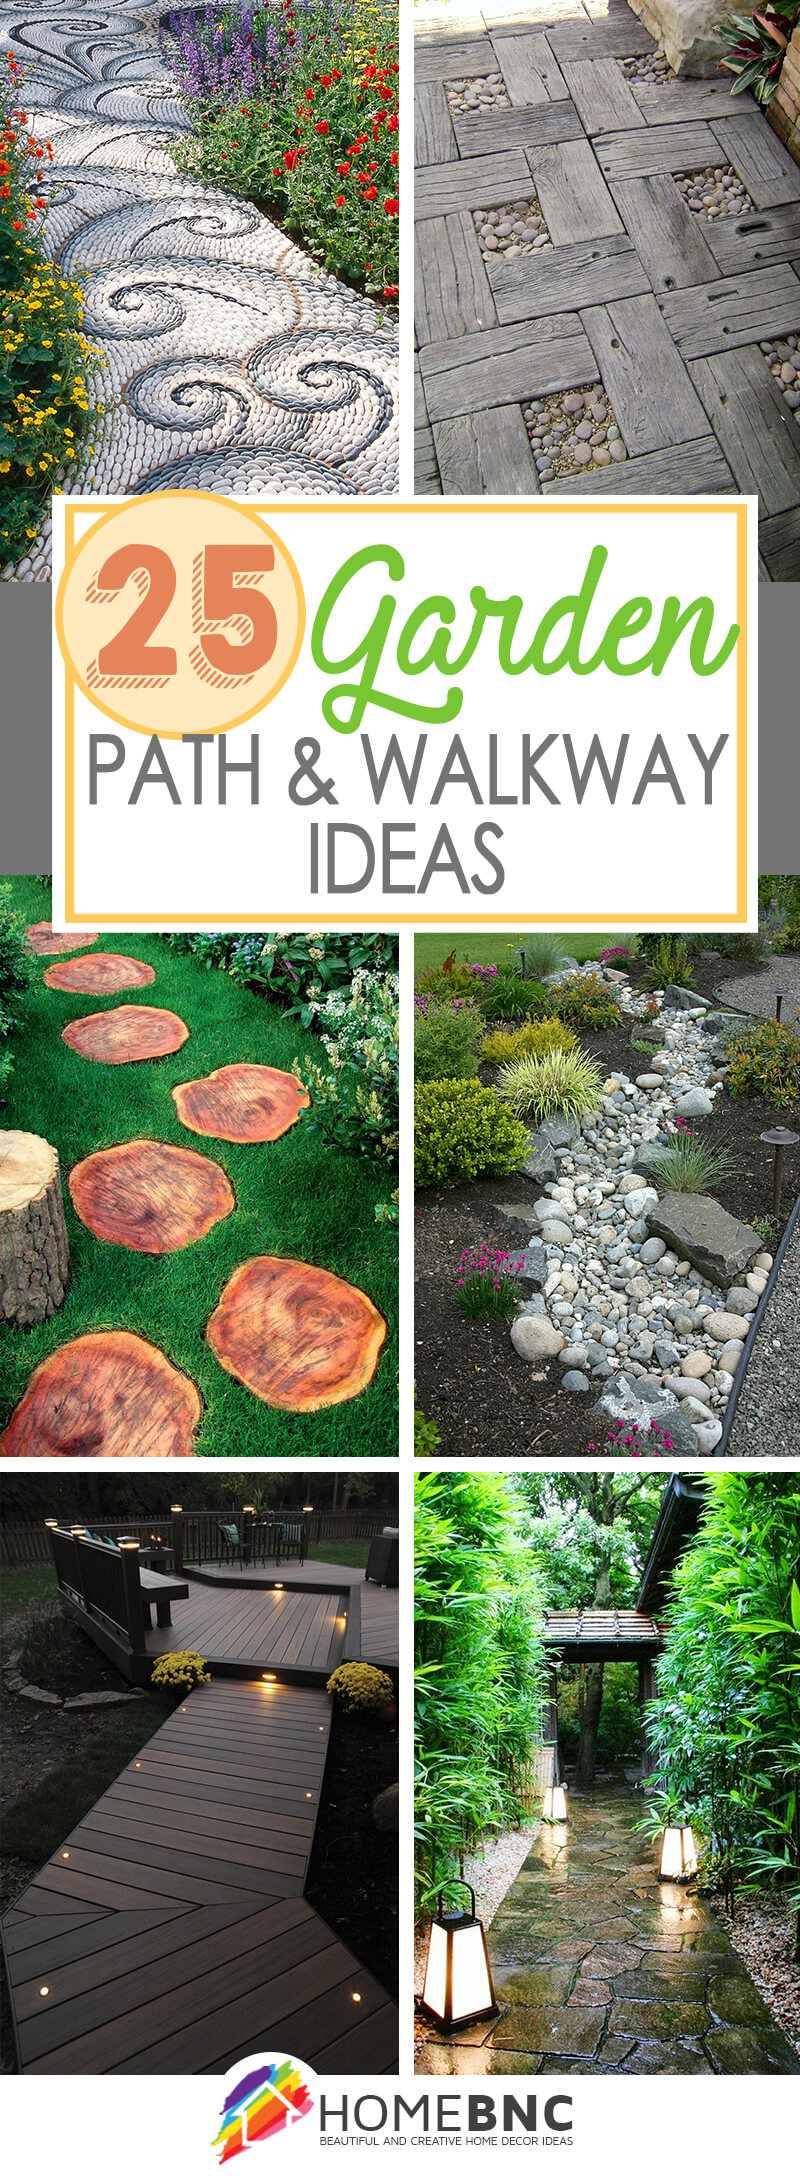 Garden Path and Walkway Designs